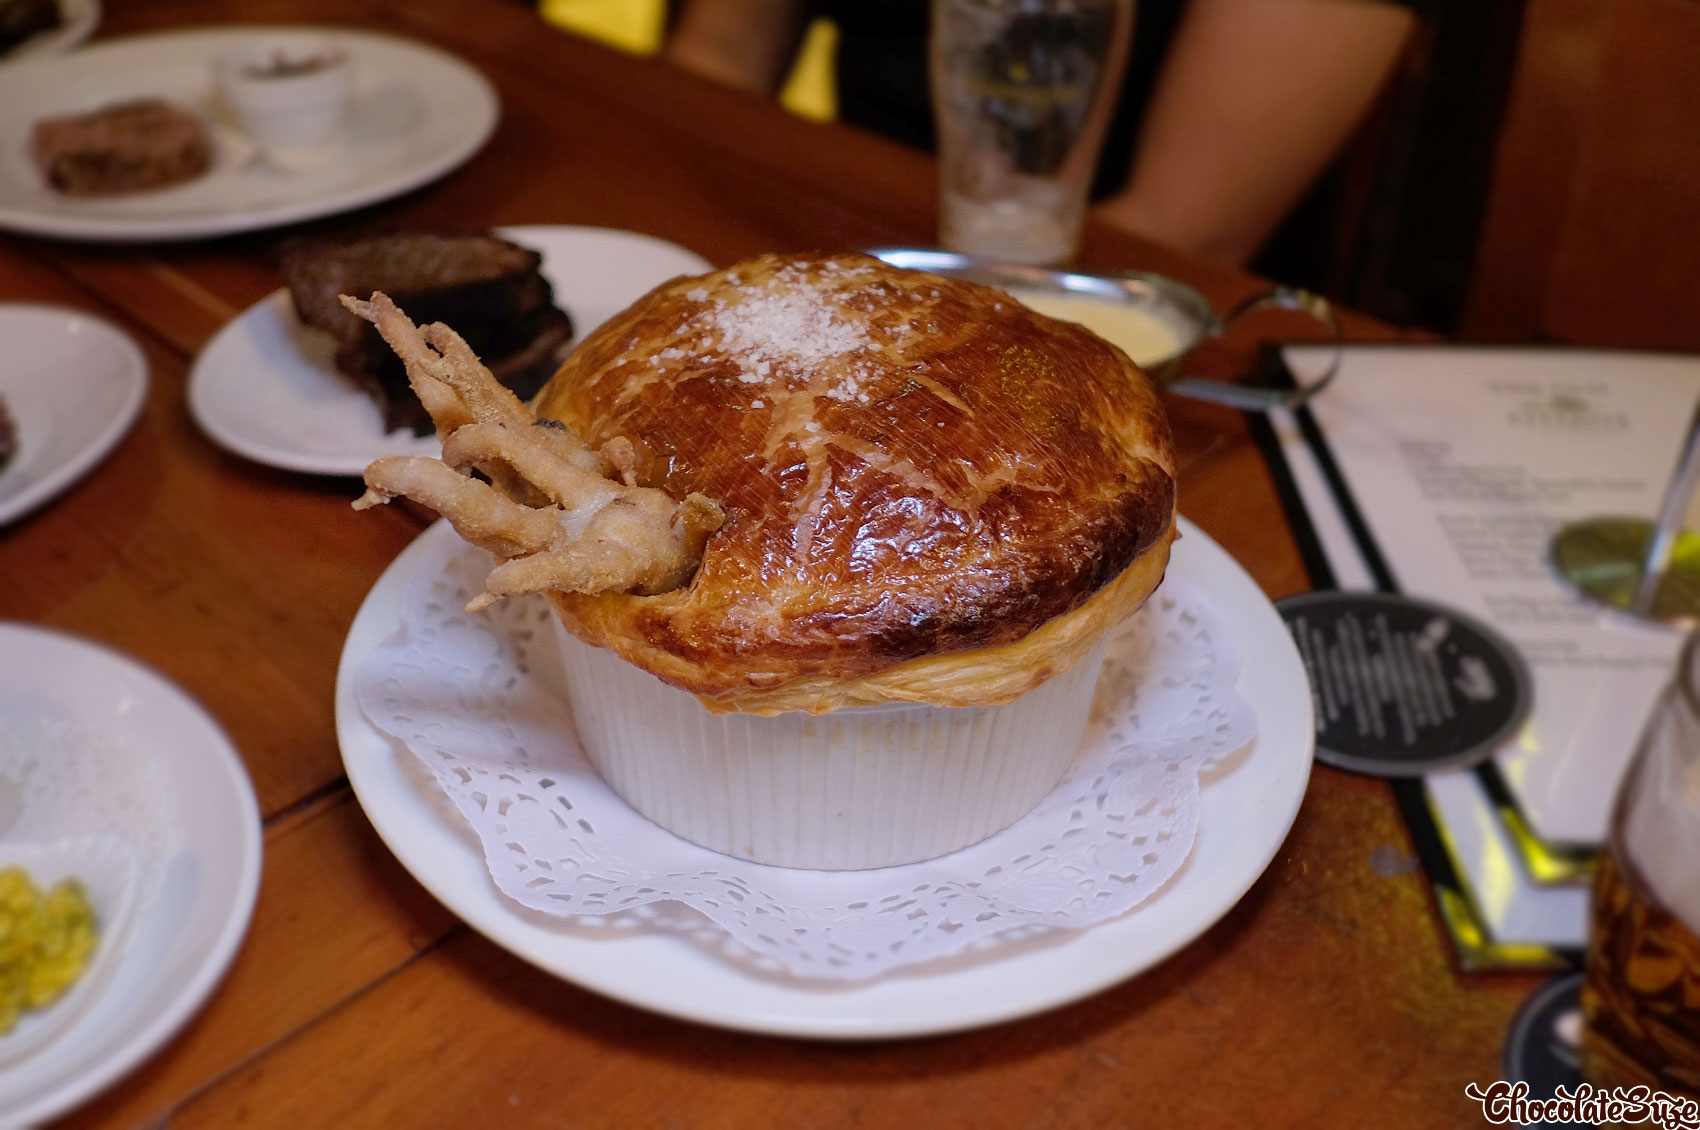 Roast chicken and artichoke pie for two at The Old Fitzroy Hotel, Woolloomooloo